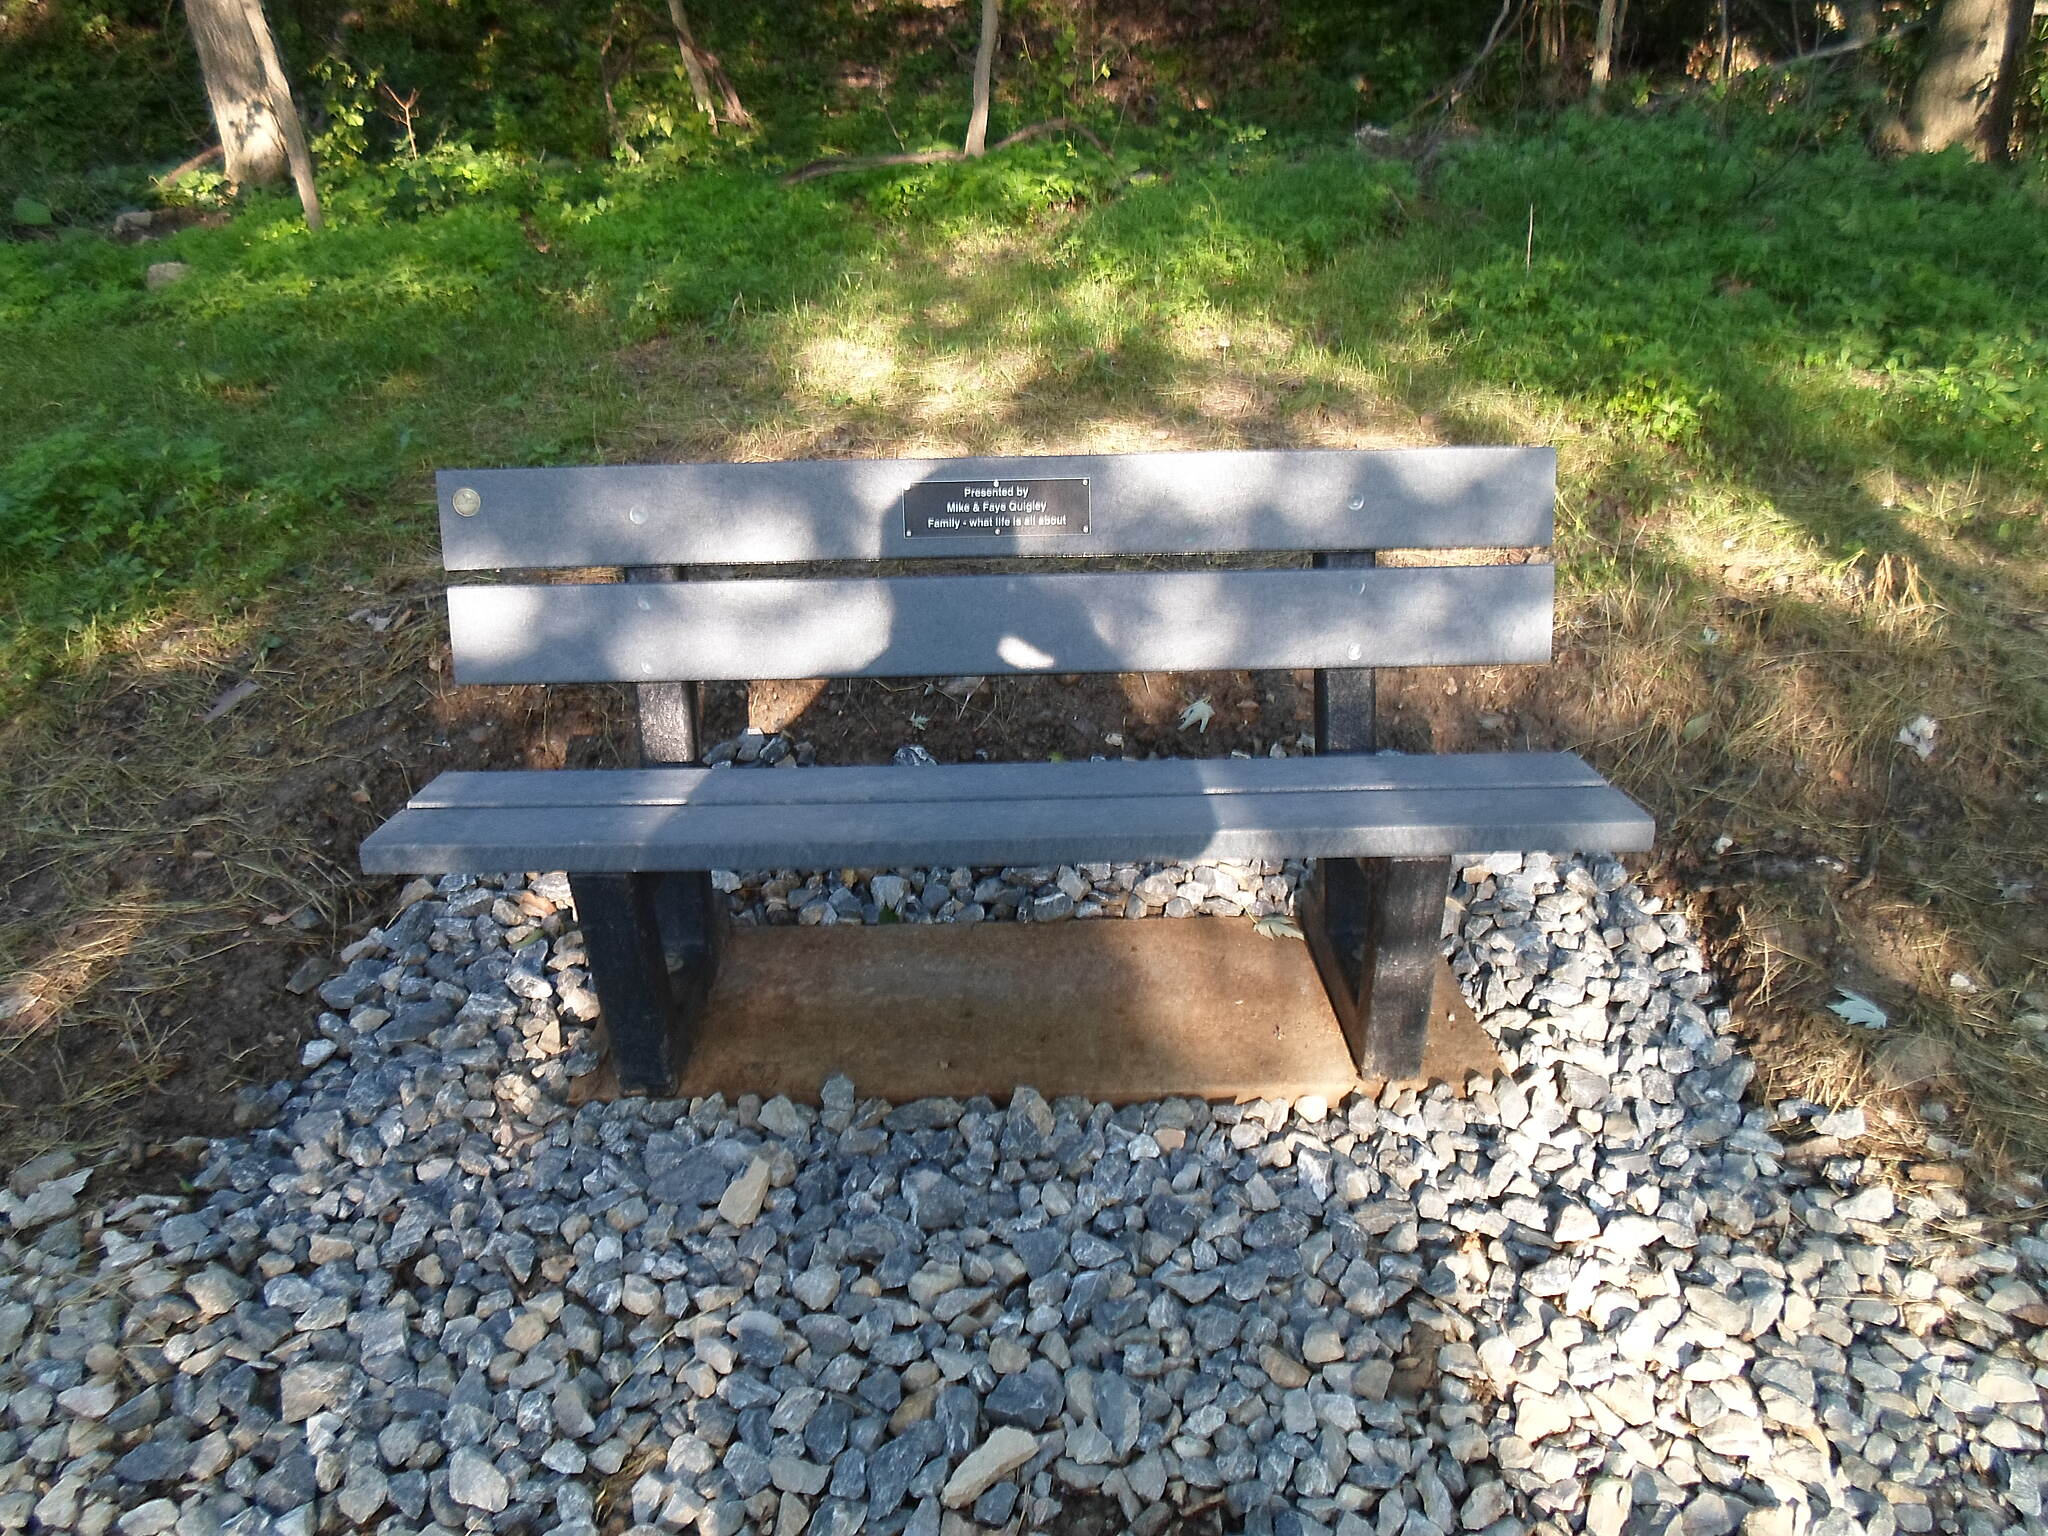 Heritage Rail Trail County Park Heritage Rail Trail Park New bench on the Northern Extension north of York. Taken June 2015.